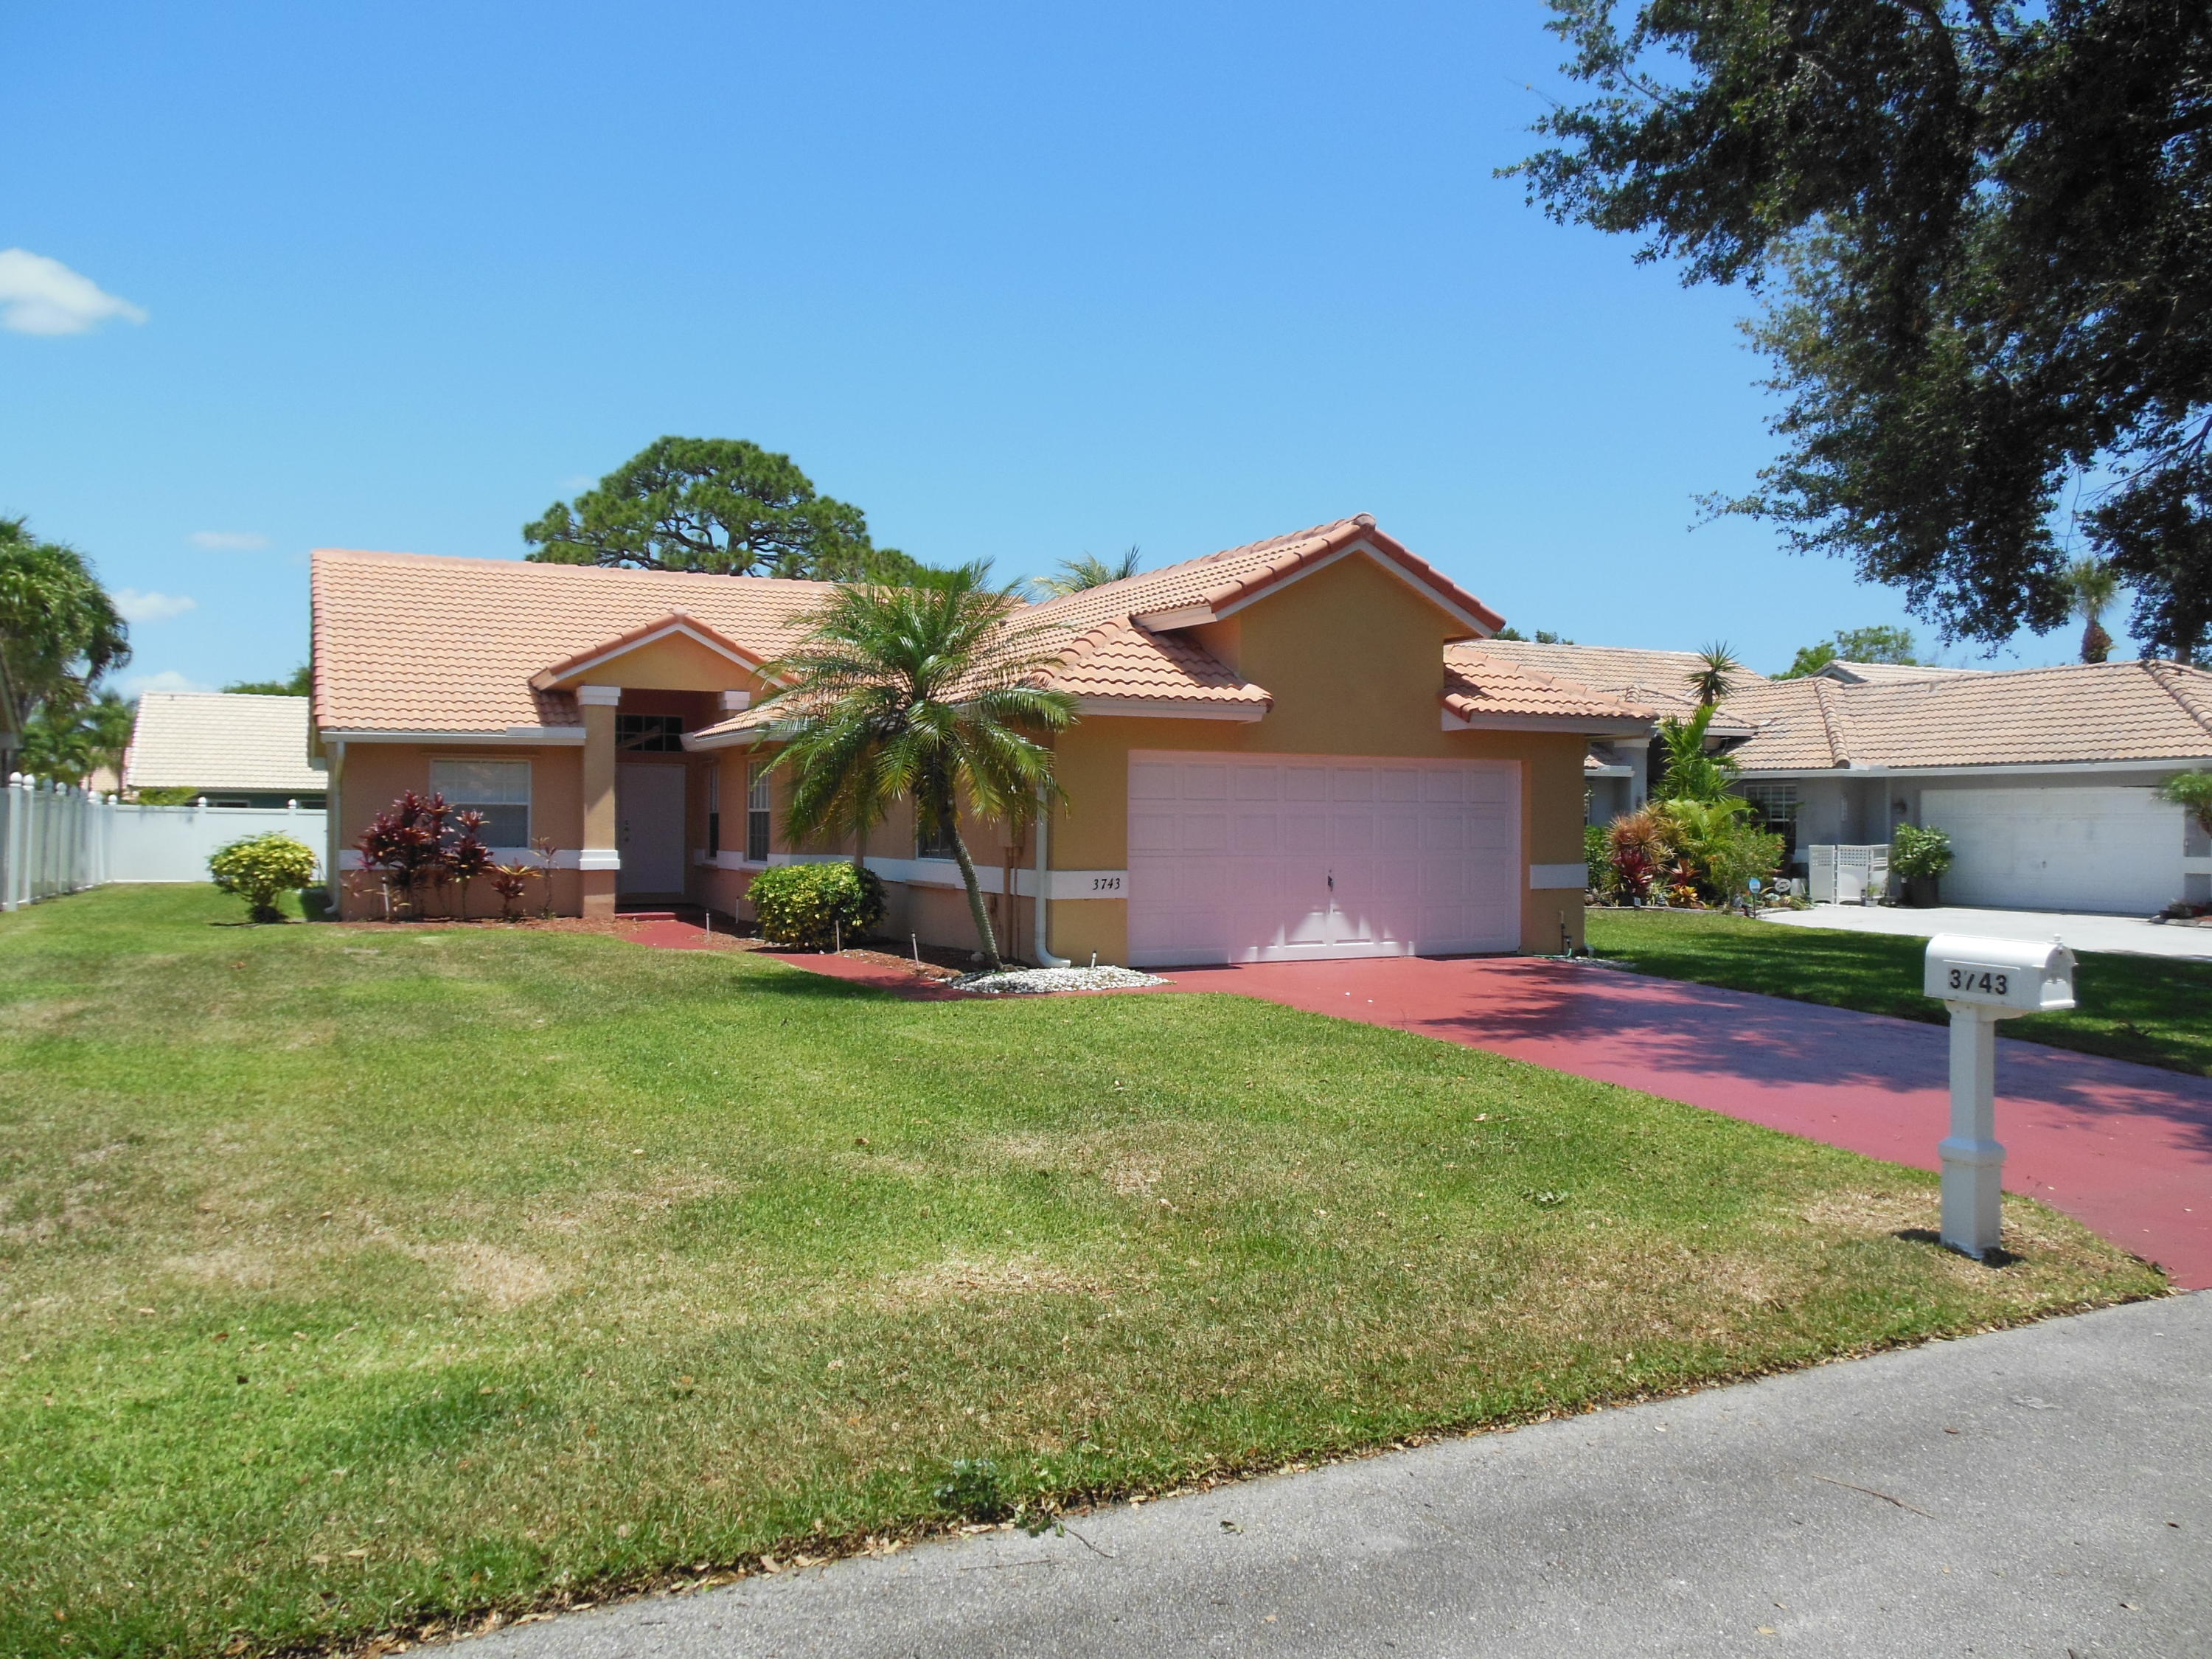 3743 S Lancewood Place  For Sale 10715424, FL